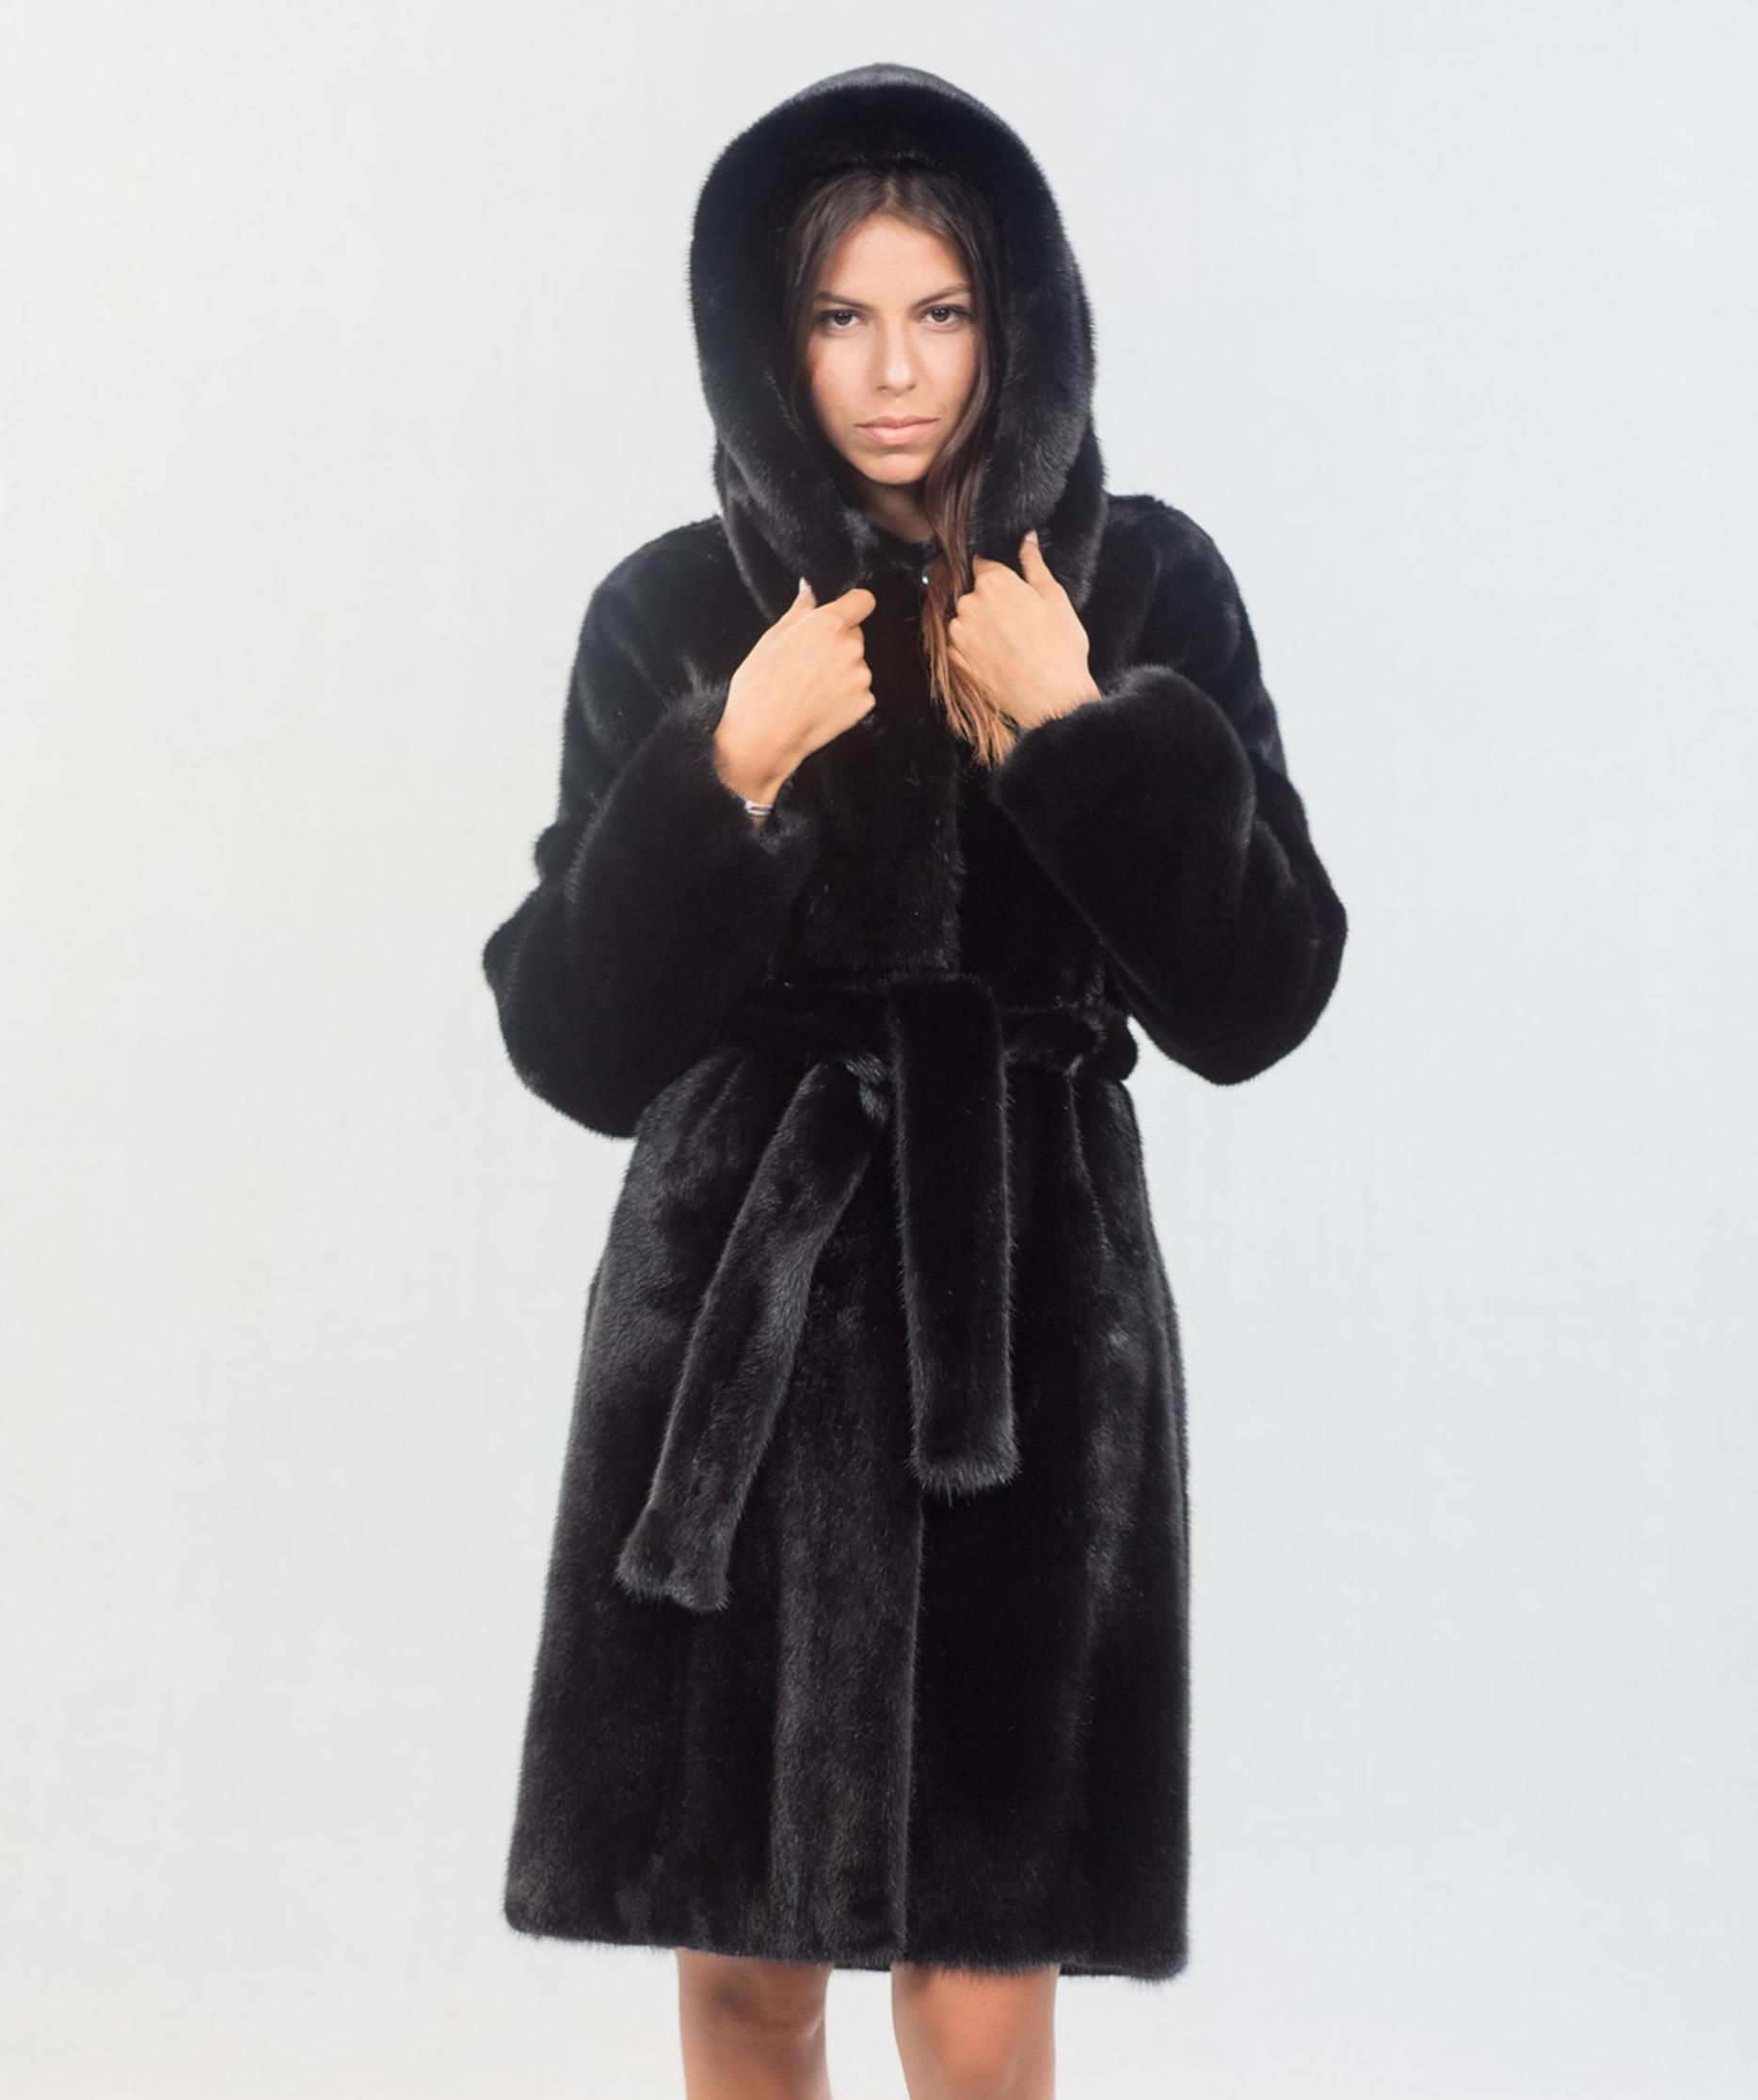 b2255f255e Black Mink Fur Jacket With Hood. 100% Real Fur Coats and Accessories.